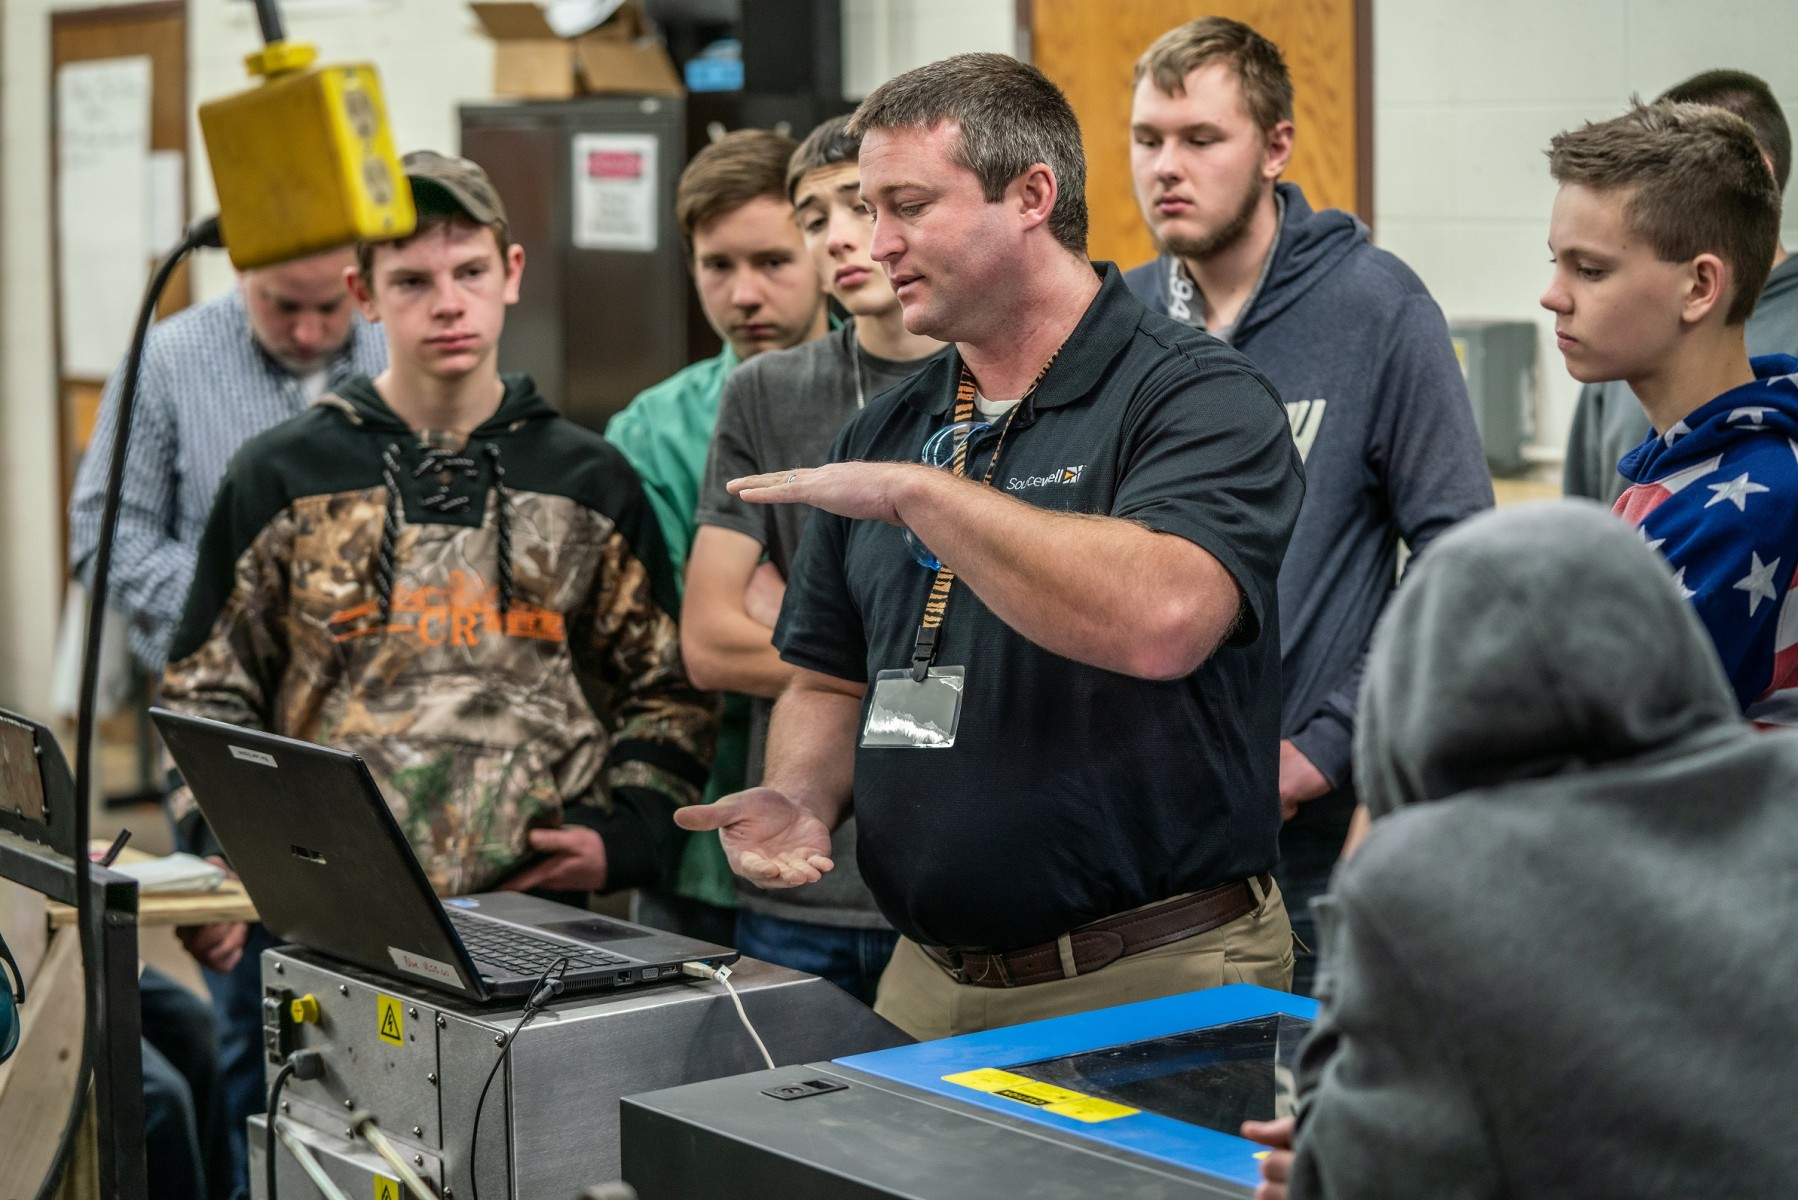 Cutting-edge technology and equipment, including this laser engraver, is available to schools through Tech Mobile. Consultant Aaron Logan demonstrates its capabilities to a welding class at Pine River-Backus High School.